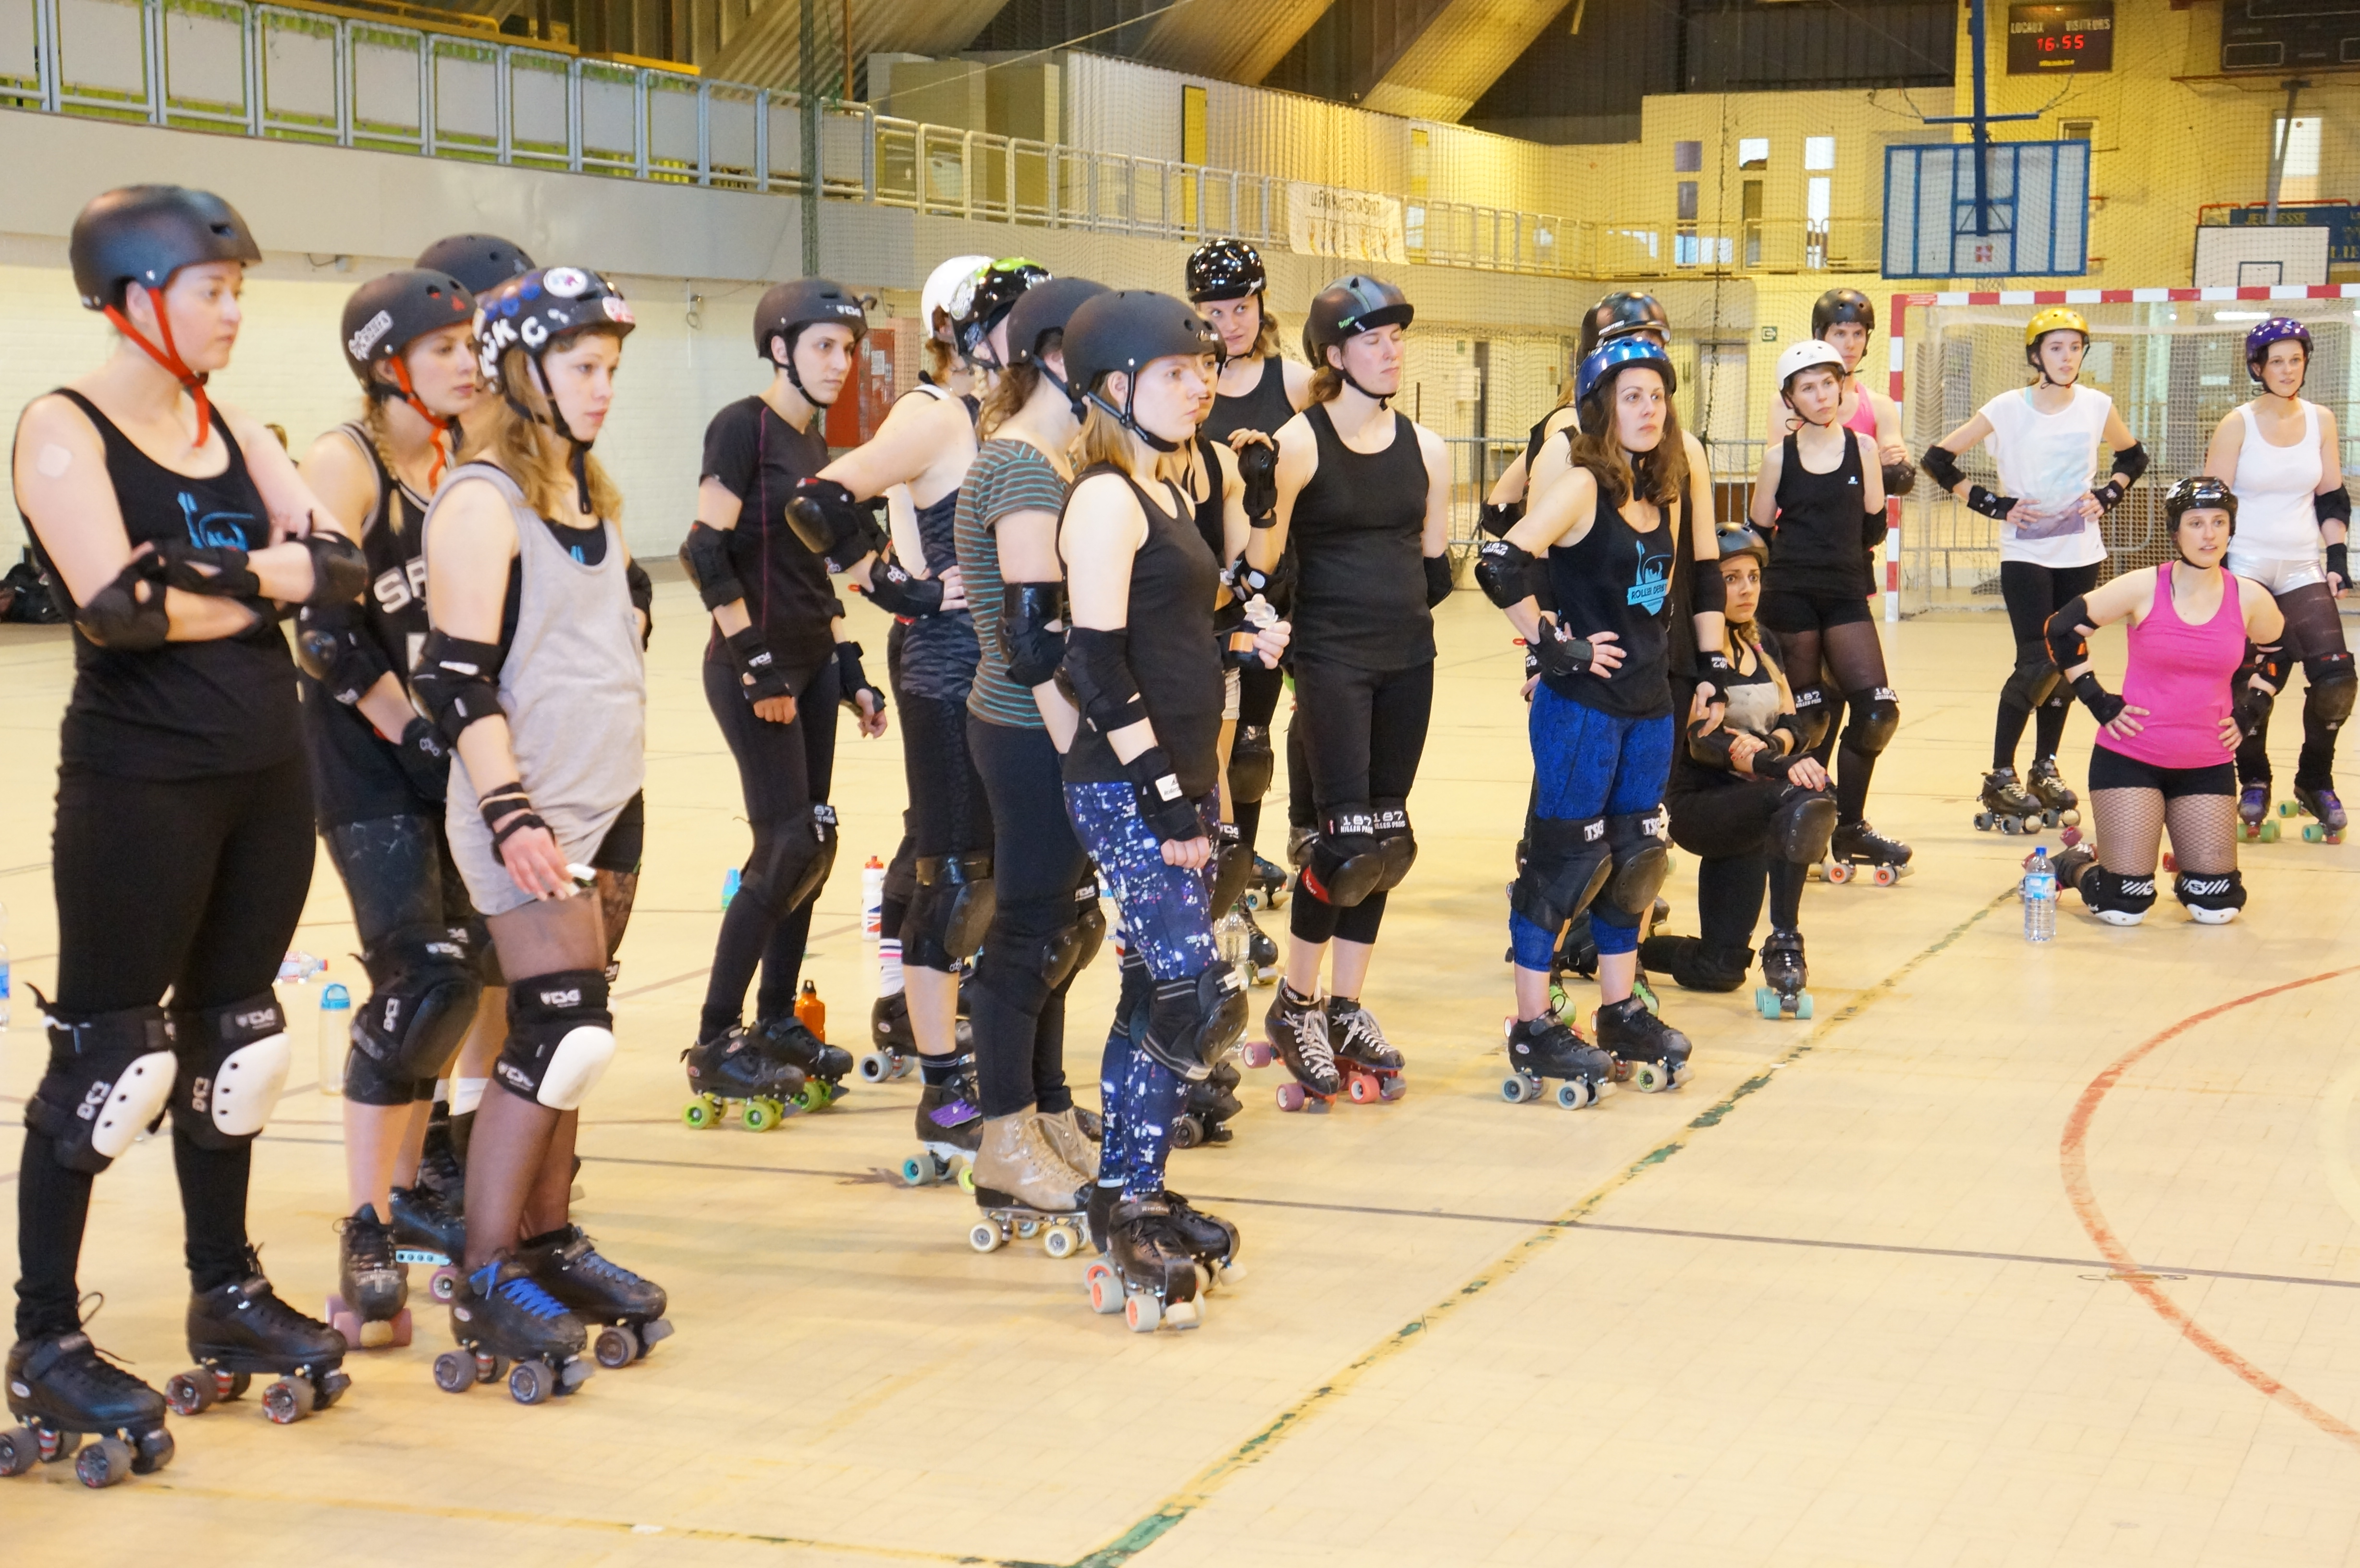 Les Dissidentes Roller Derby Liège/ Pic by 1FDLE.